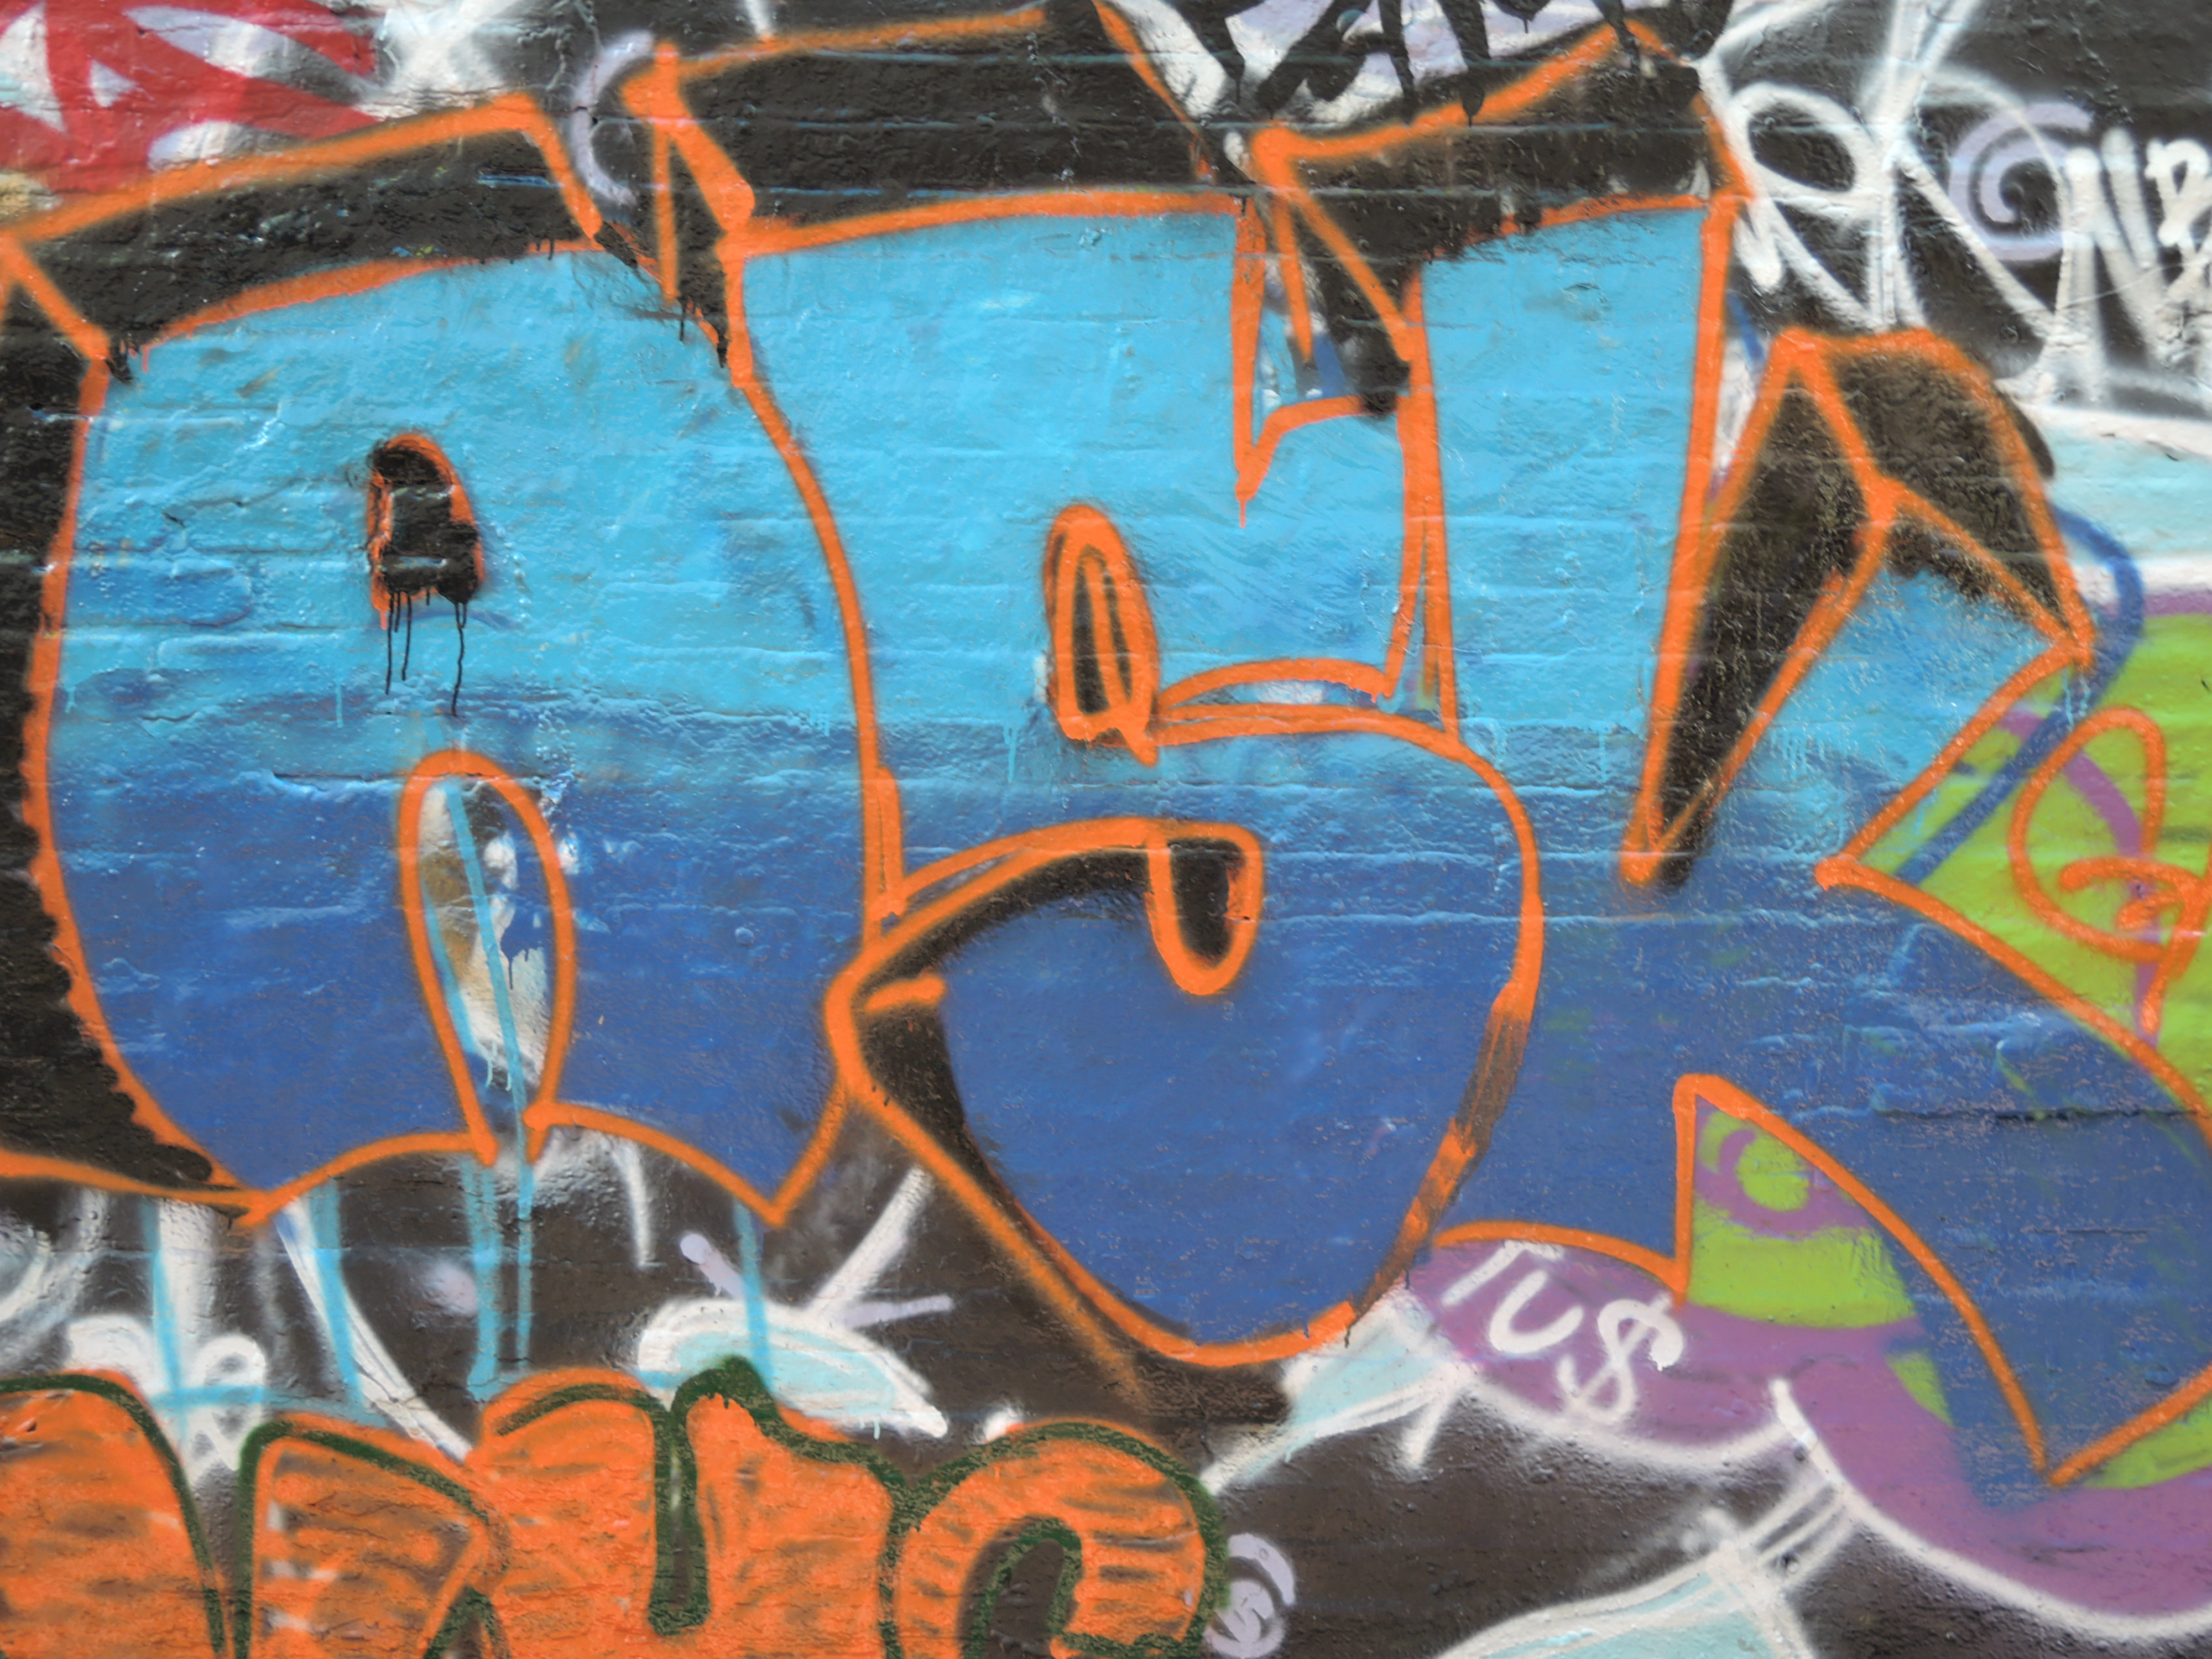 A sample photo of graffiti taken by the Nikon Coolpix P340.